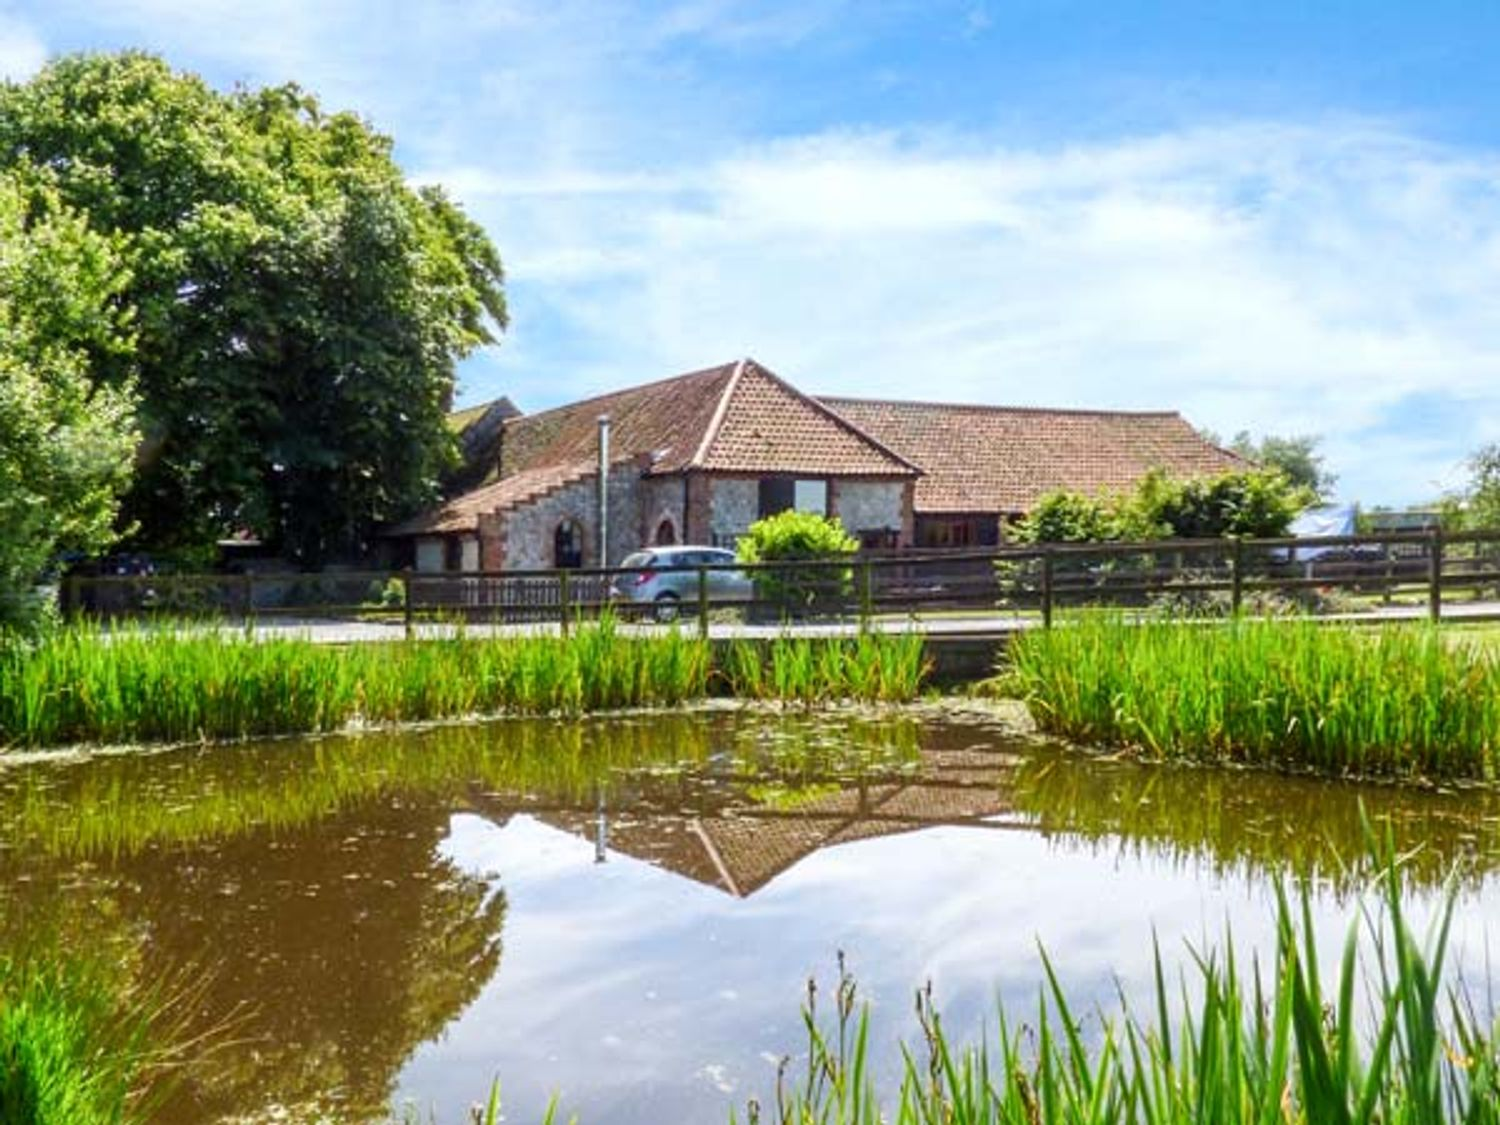 Holiday Cottages in Norfolk: Beech Barn, Cromer | Sykes Cottages